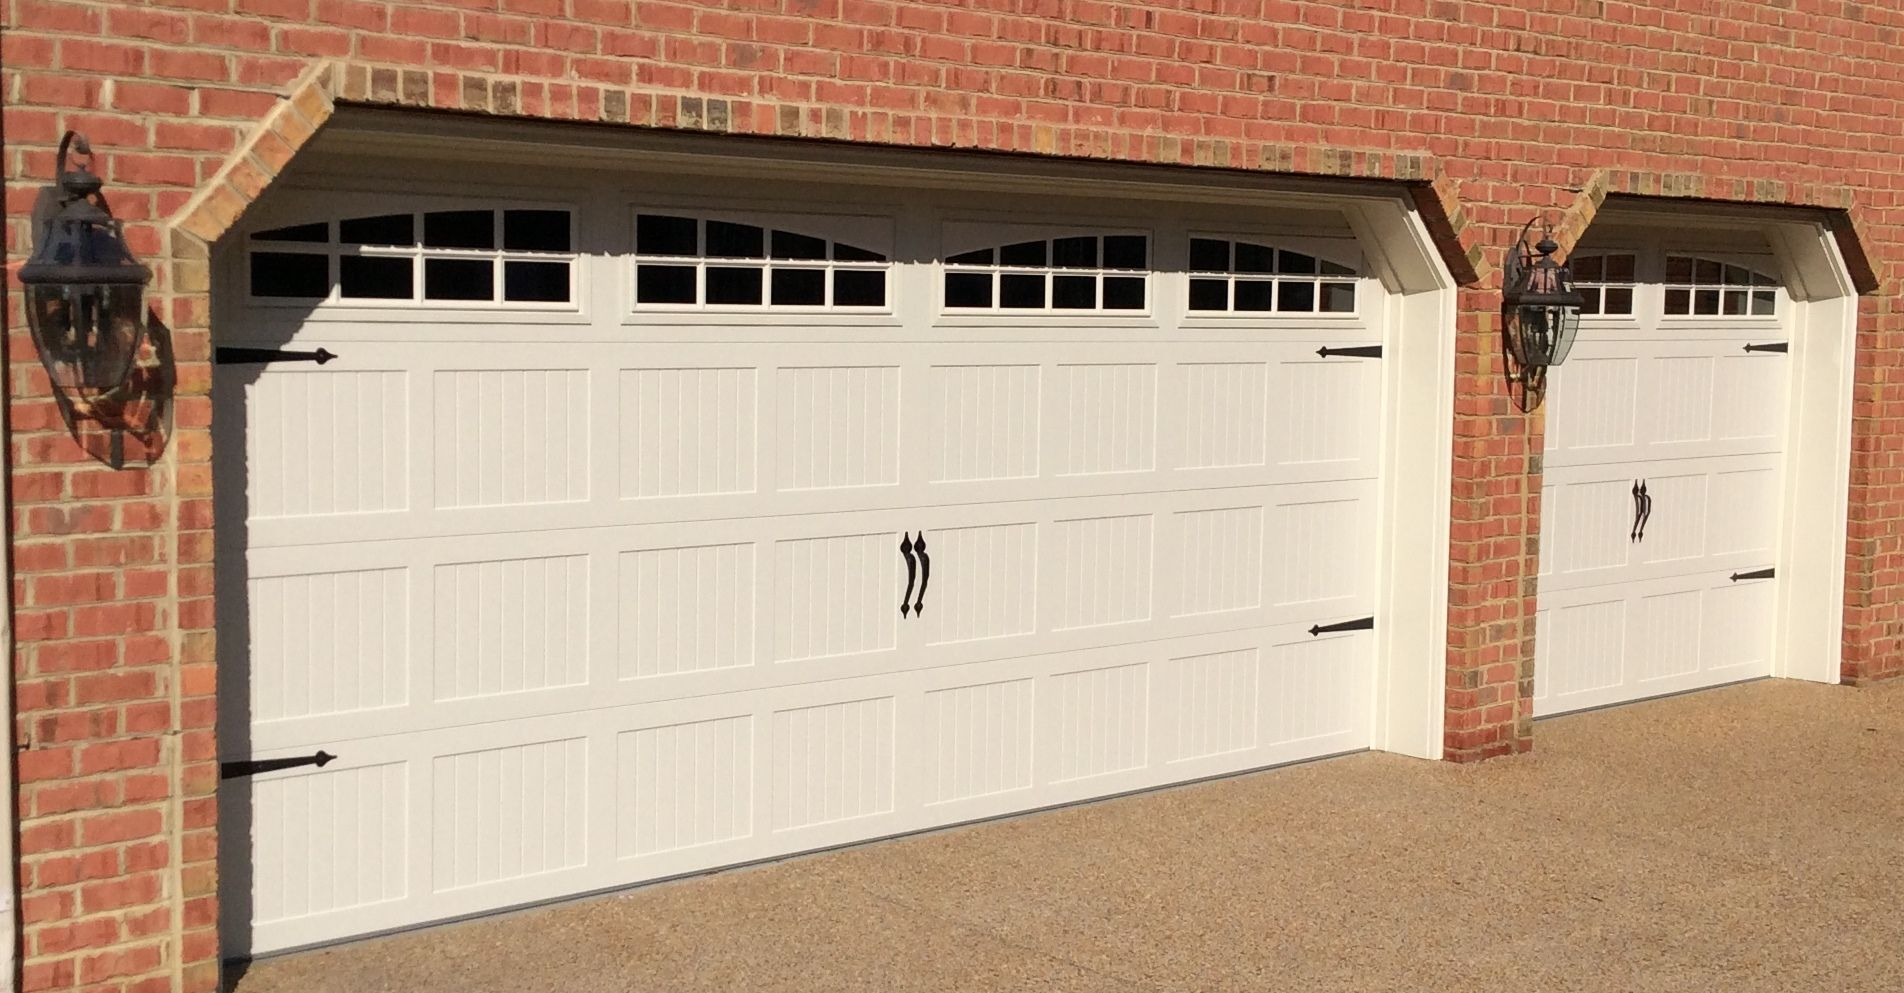 8x7 16x7 model 5216 almond carriage style steel garage doors with top stockton arched glass installed by the richmond store